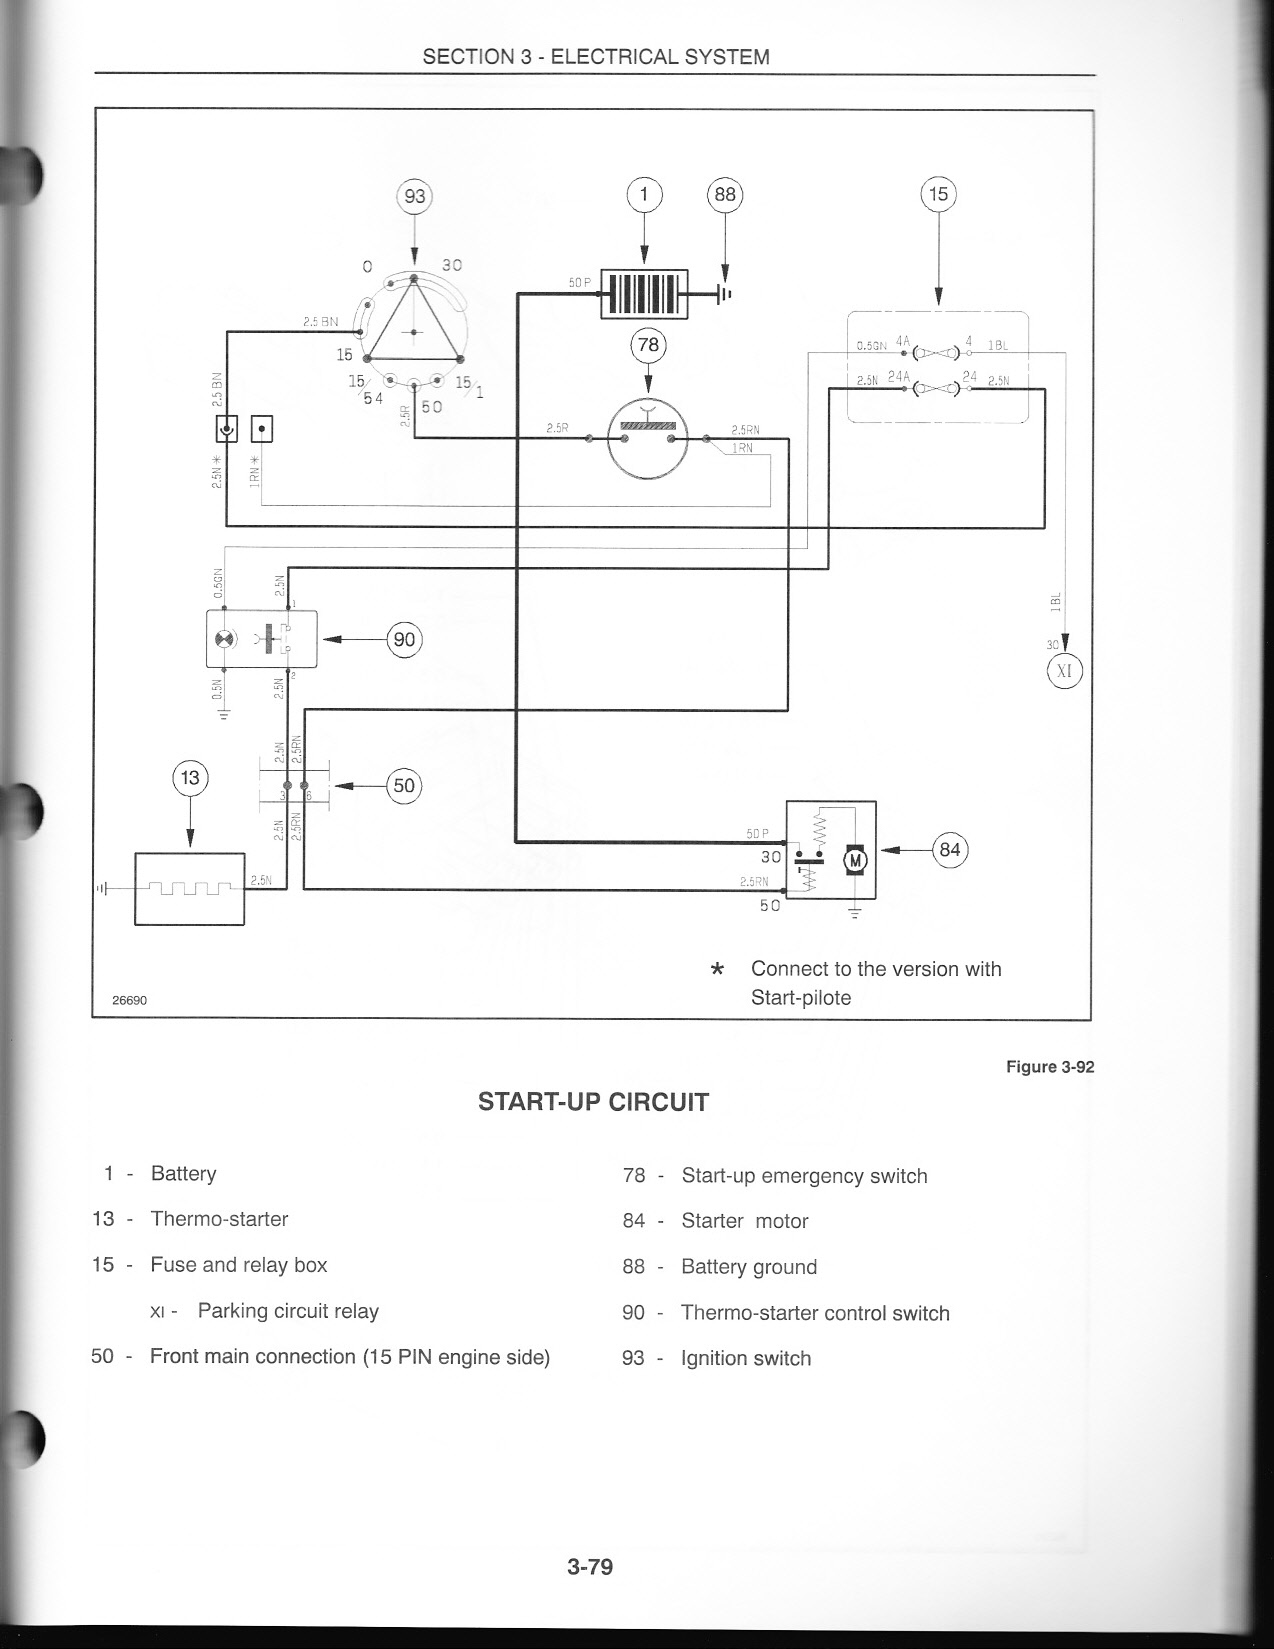 Tl 80 Two Wheel Drive Rops Tractor Will Not Start With Key Switch I Vintage New Holland Lawn Wiring Diagram Graphic